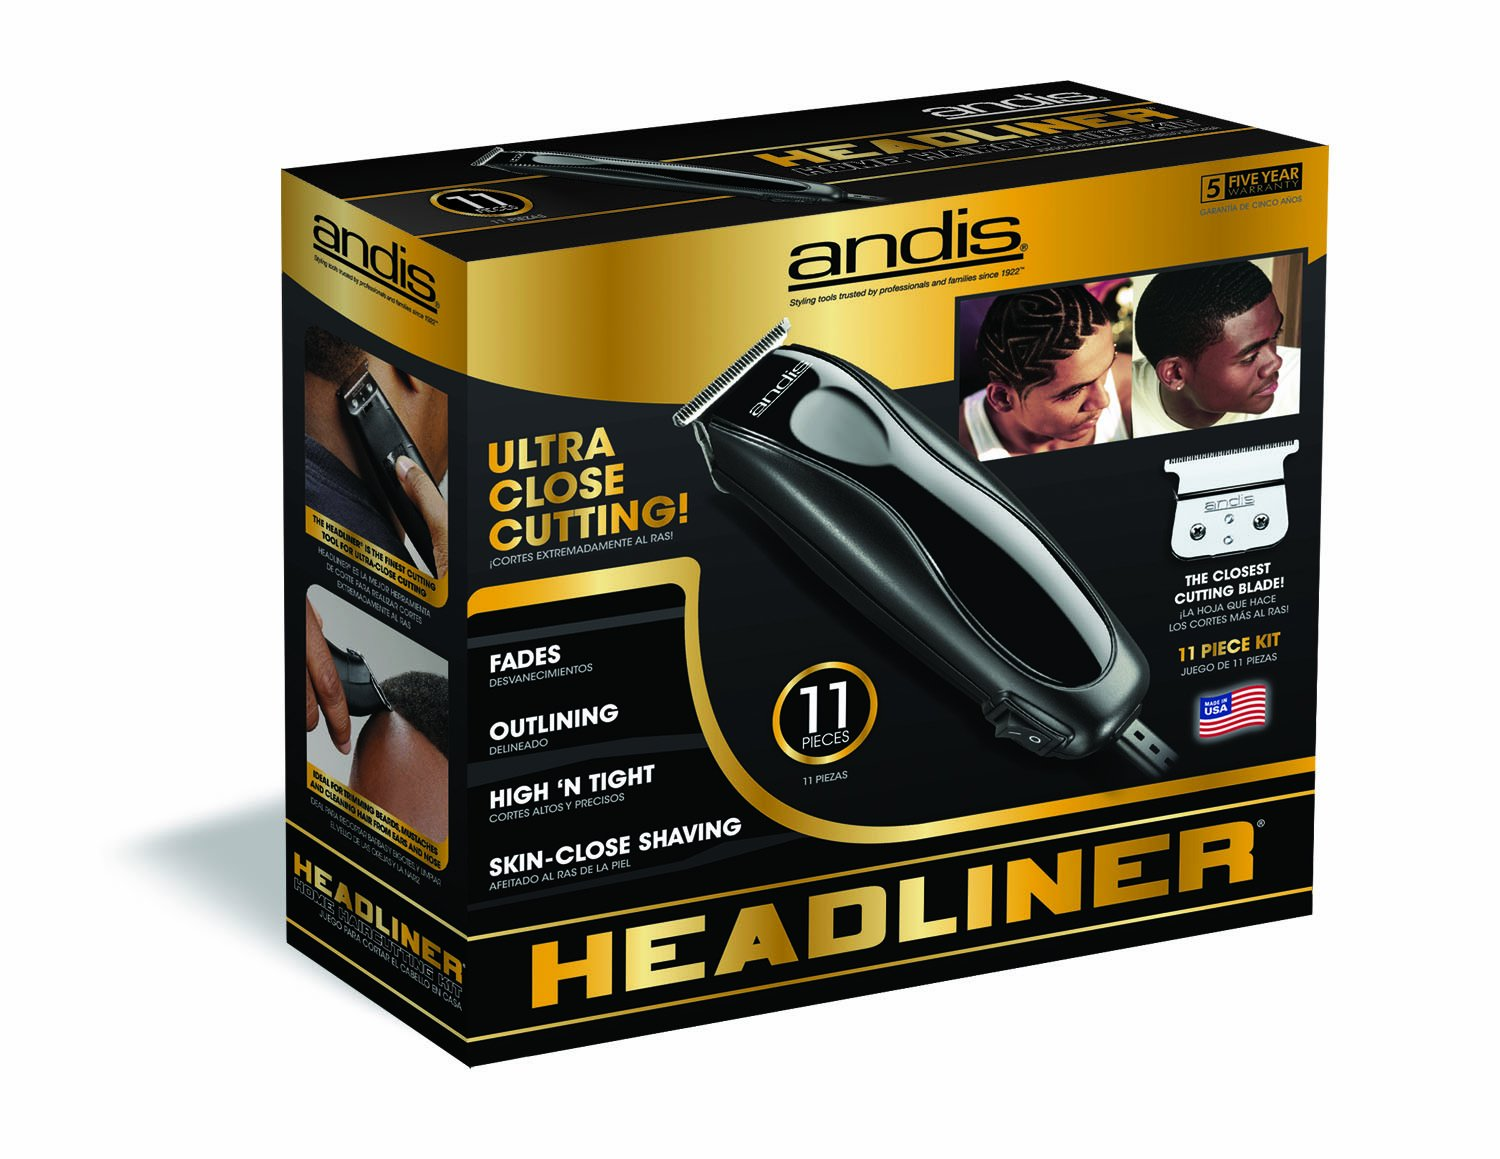 Andis Skin-Close Headliner 11-Piece Hair Clipper/Beard Trimmer Kit, Black, Model LS-2 (29775) by Andis (Image #4)